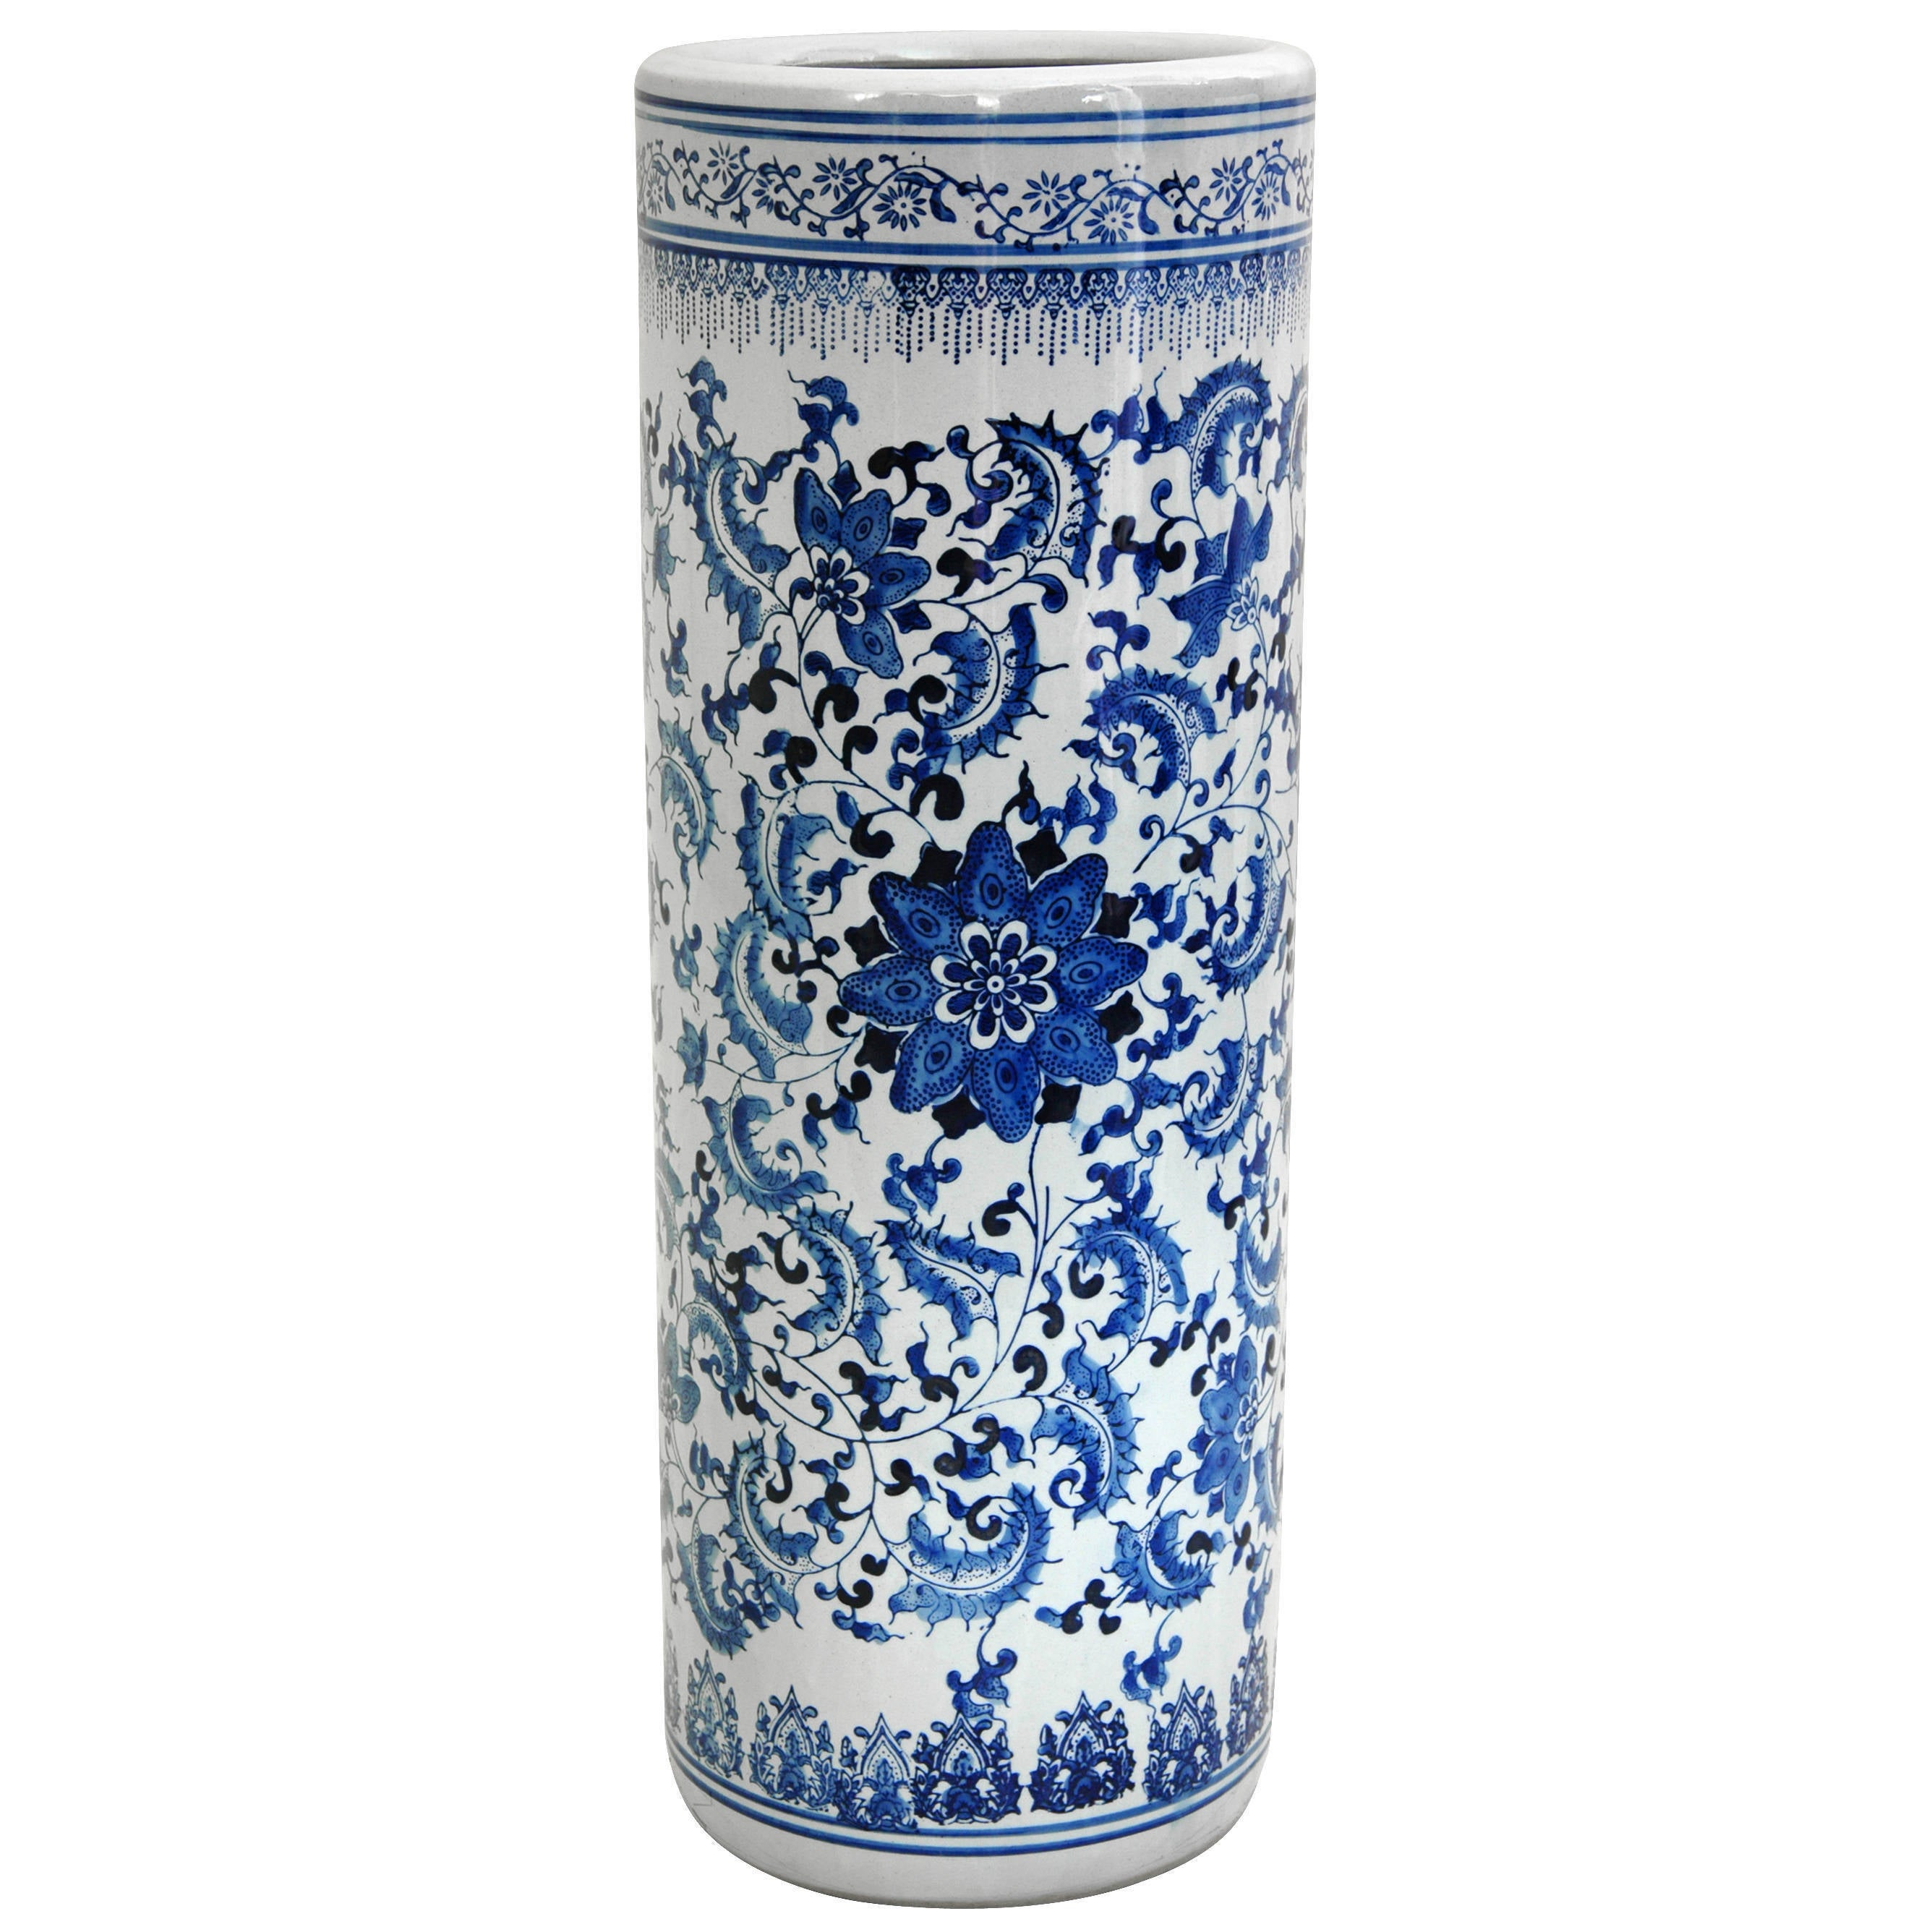 Handmade porcelain 24 inch blue and white floral umbrella stand handmade porcelain 24 inch blue and white floral umbrella stand china free shipping today overstock 13435022 reviewsmspy